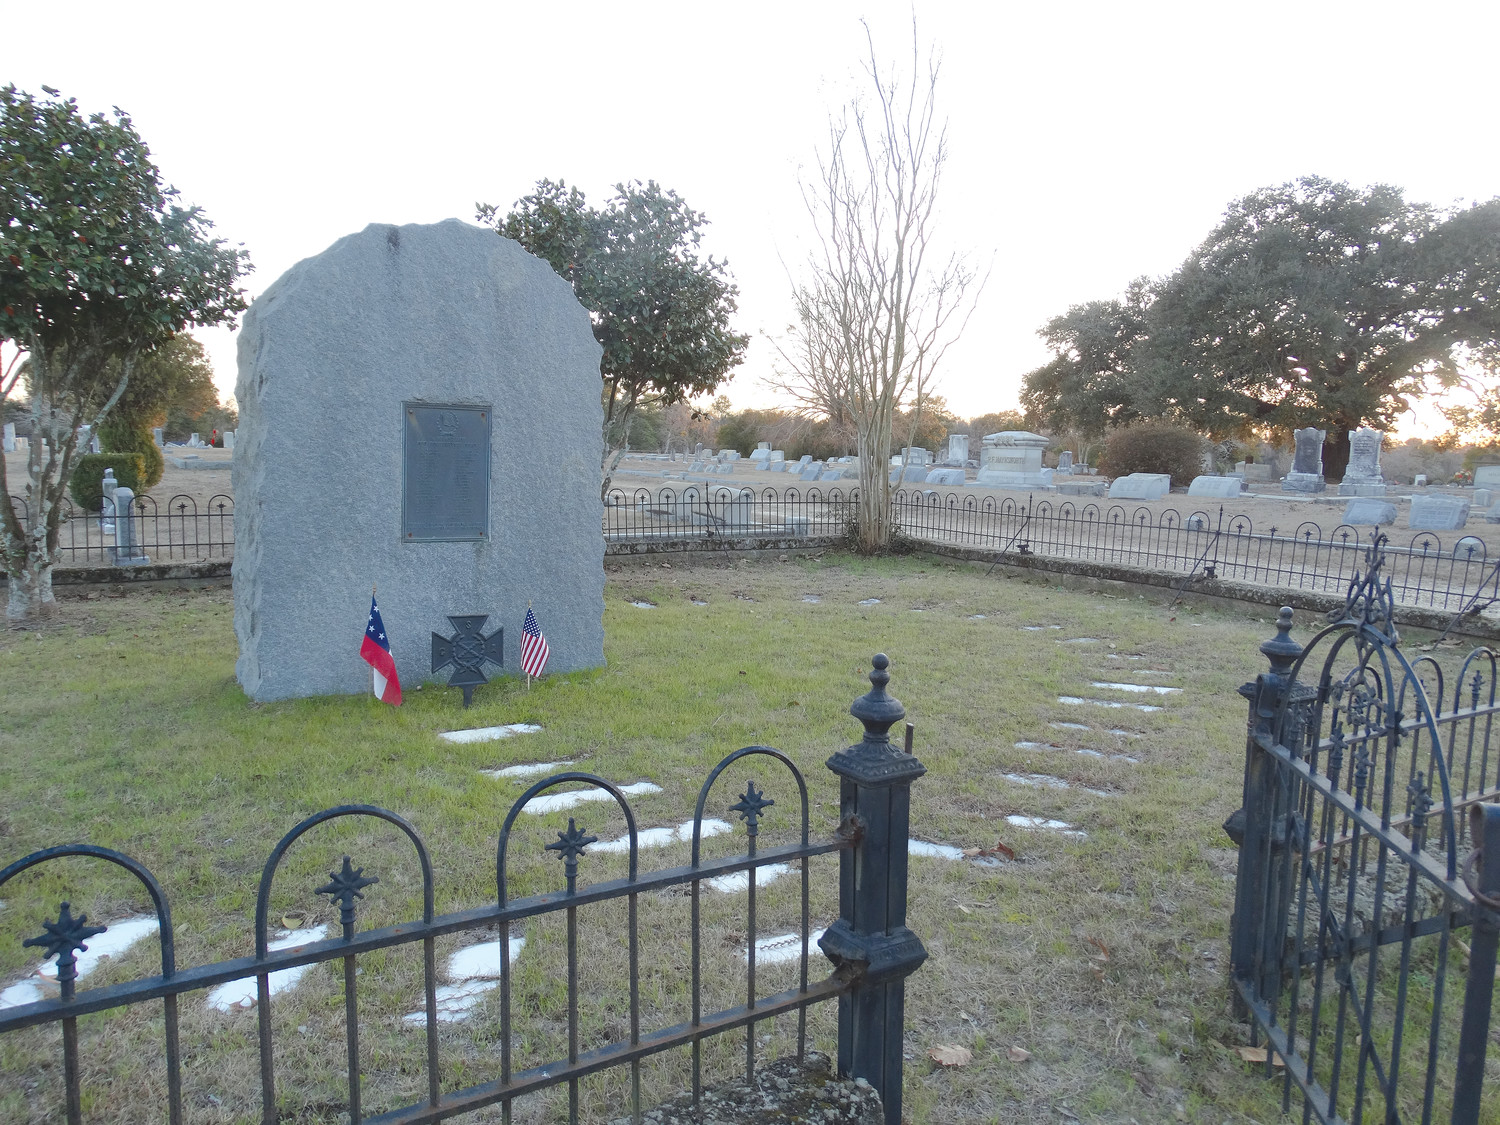 The Sumter Cemetery plot where the unknown soldier is buried, along with others who died during the Civil War, is seen recently.